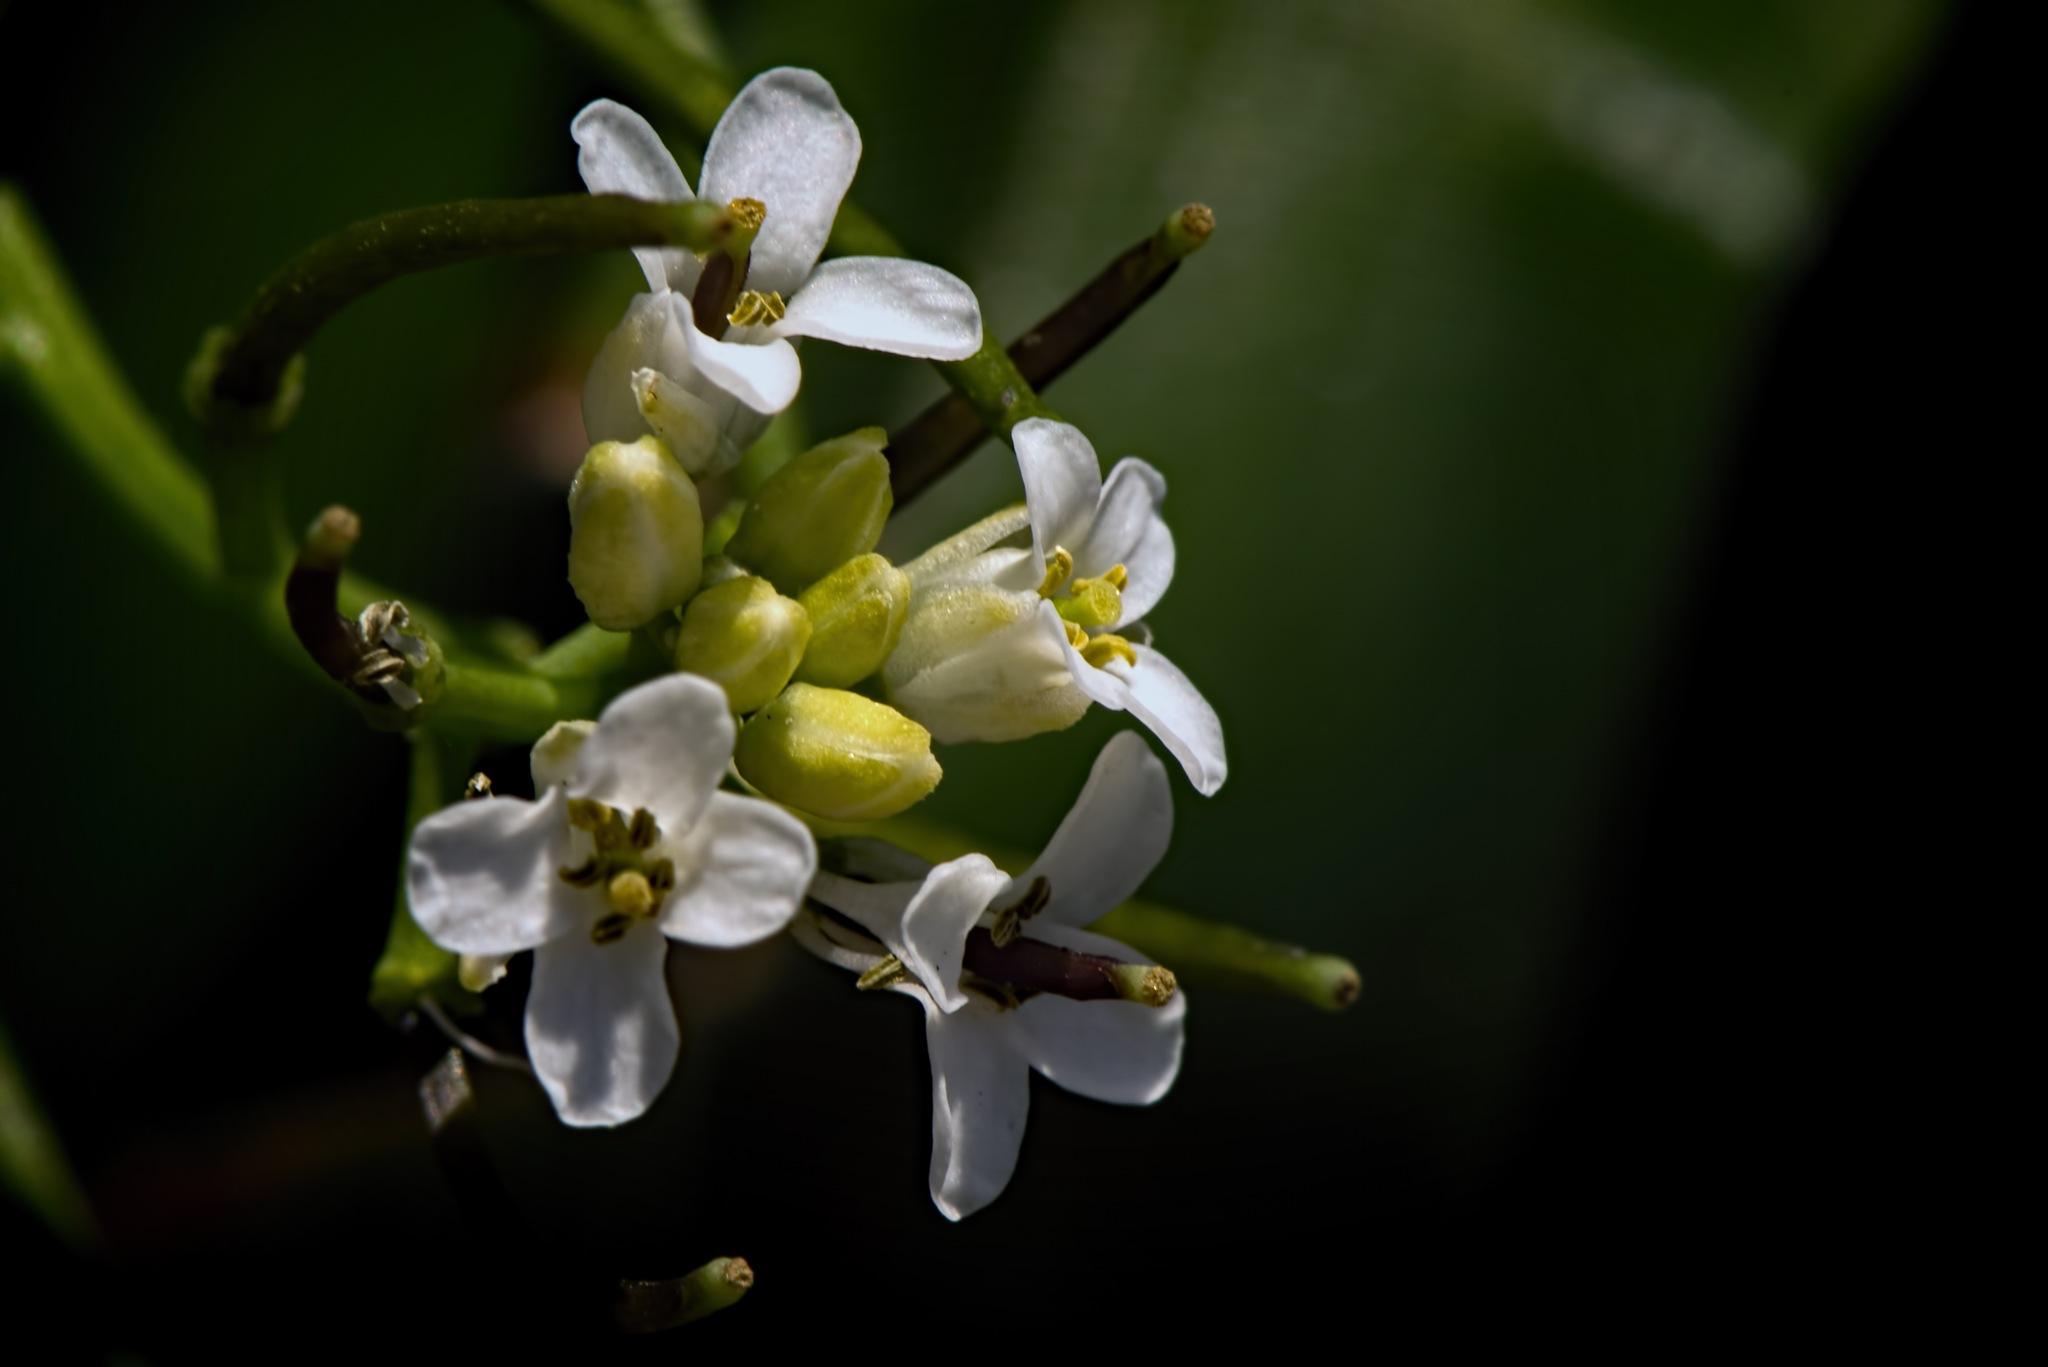 Small White Wildflower in the Garden 0524 by ThomasJerger